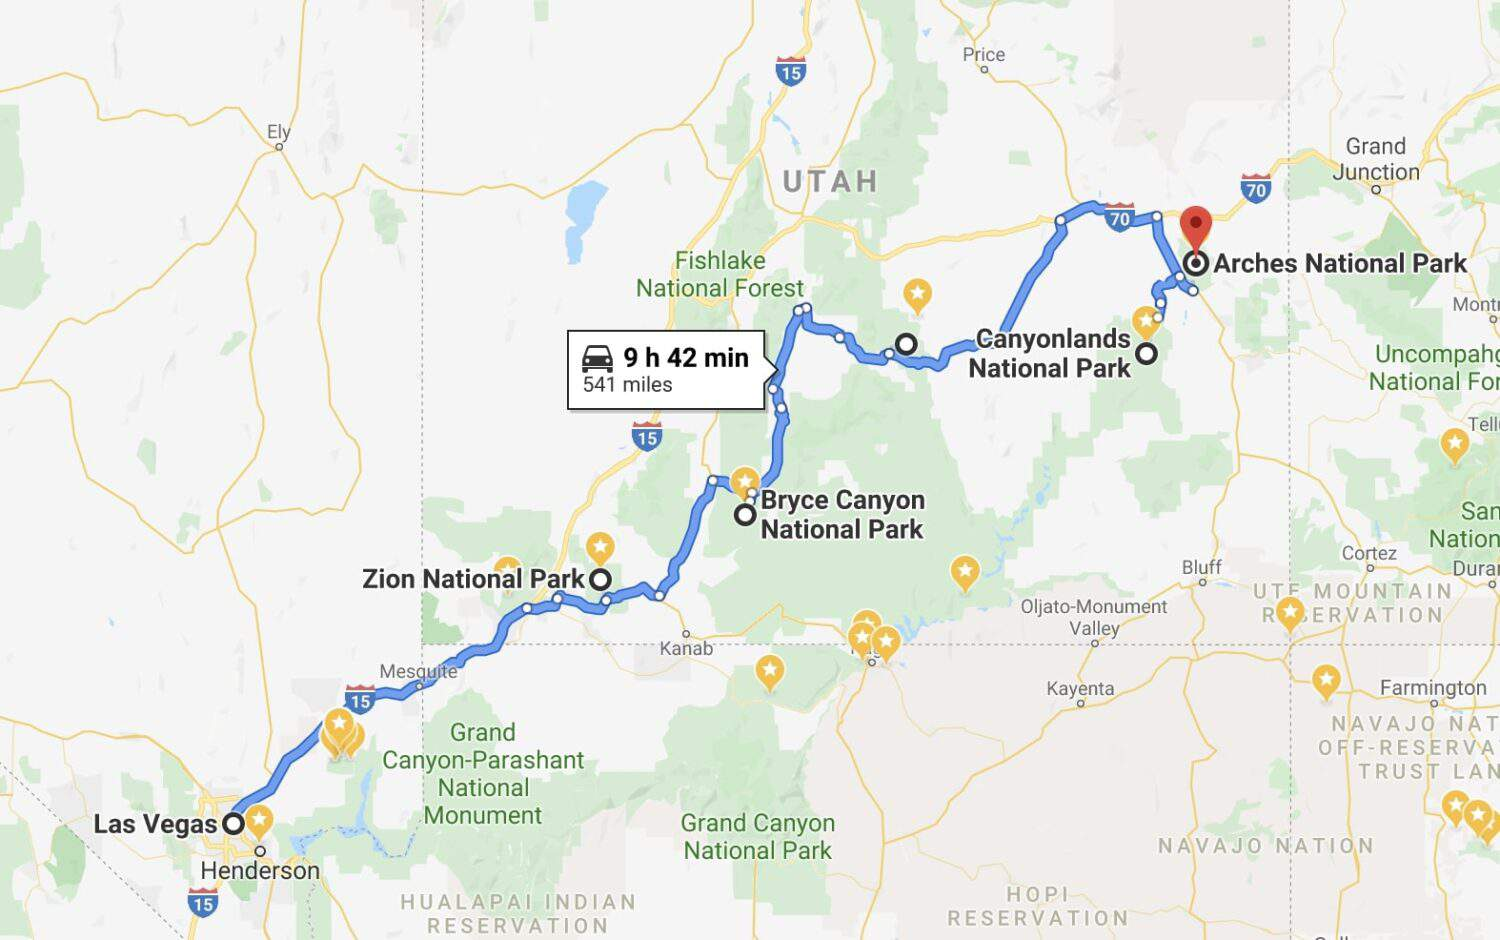 Utah National Parks Road Trip Map From Las Vegas